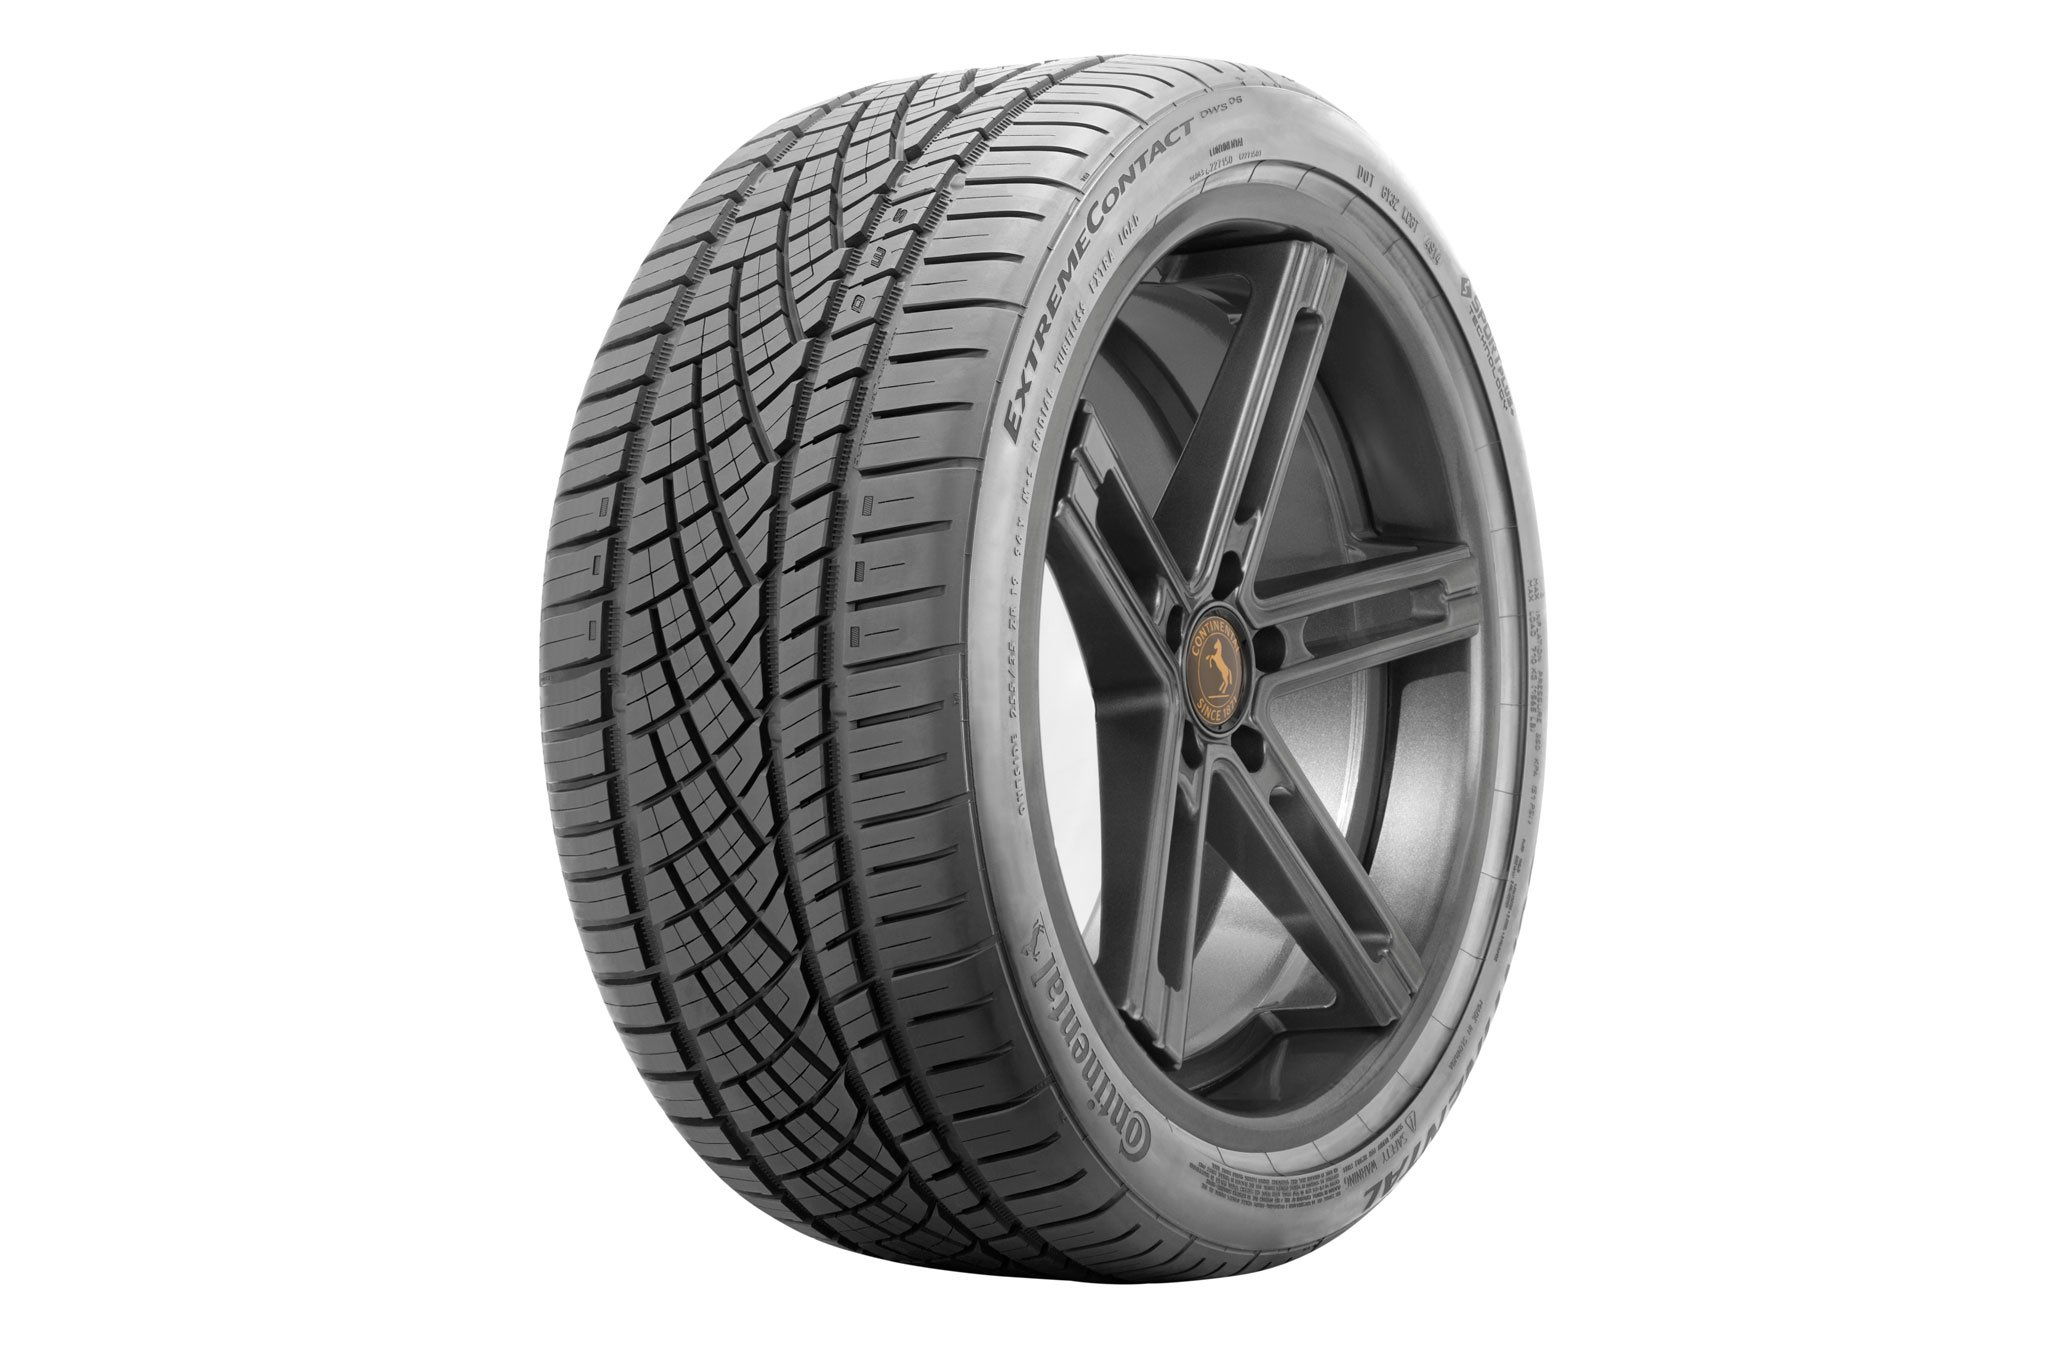 Continental Extreme Contact DWS06 All-Season Radial Tire - 285/30ZR22 10Y